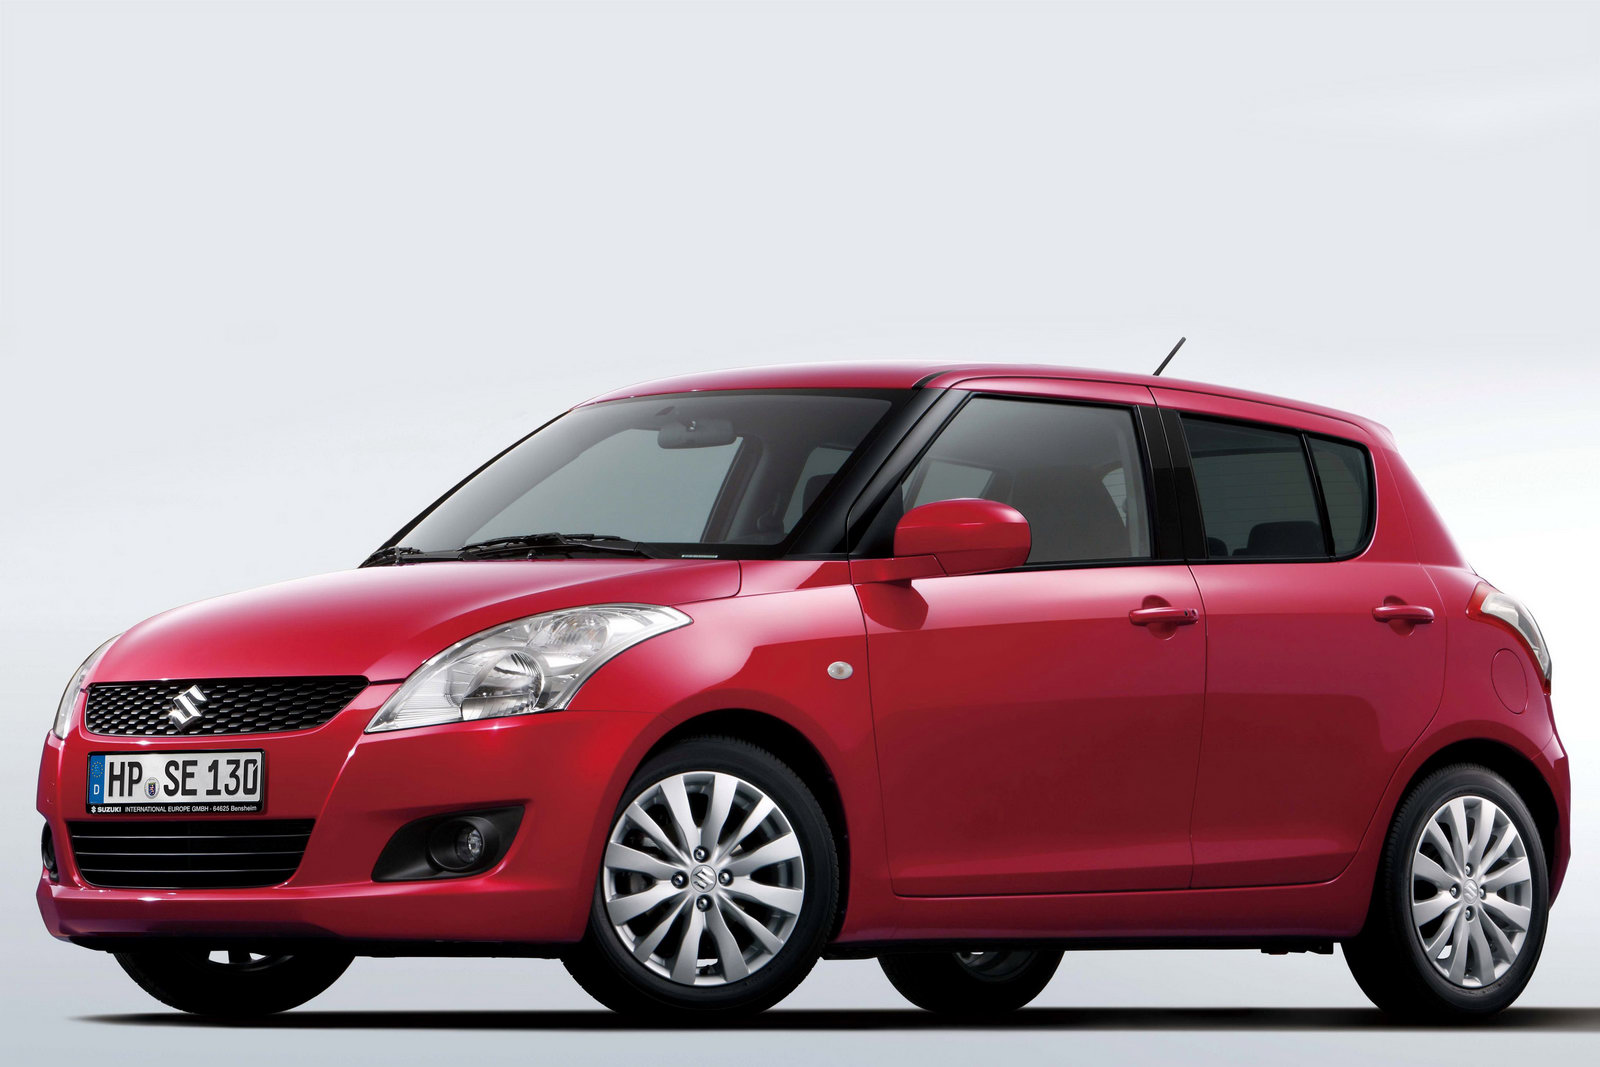 new suzuki swift breaks cover no really it 39 s a. Black Bedroom Furniture Sets. Home Design Ideas